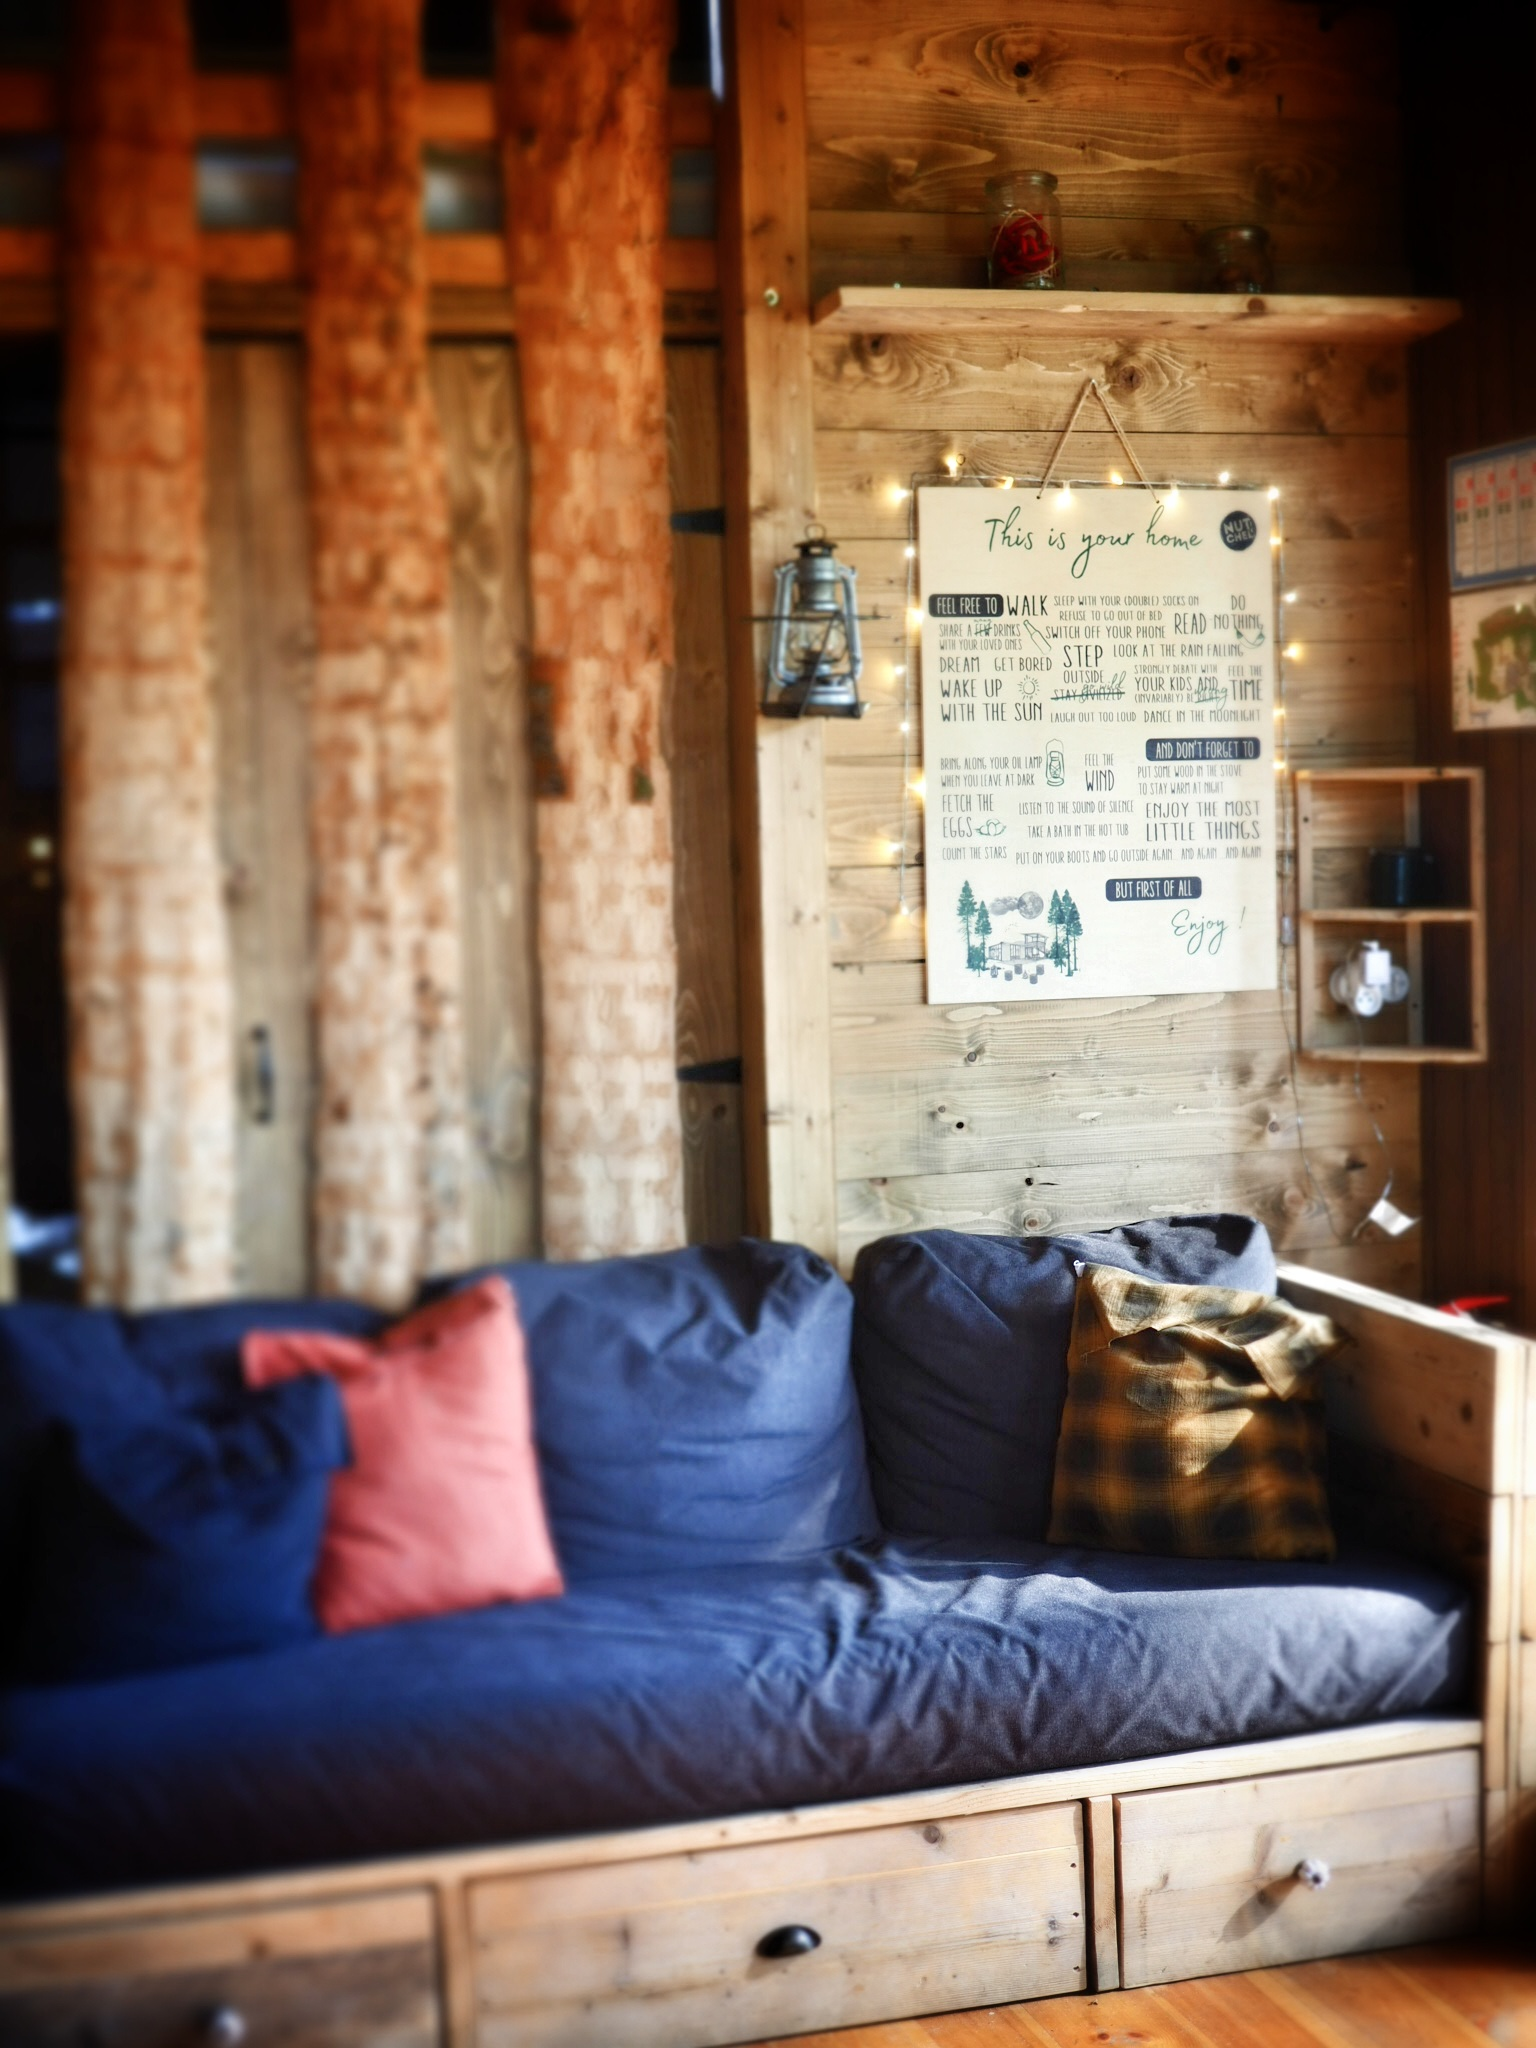 The sofa had lots of clever storage so the cabin never felt cluttered